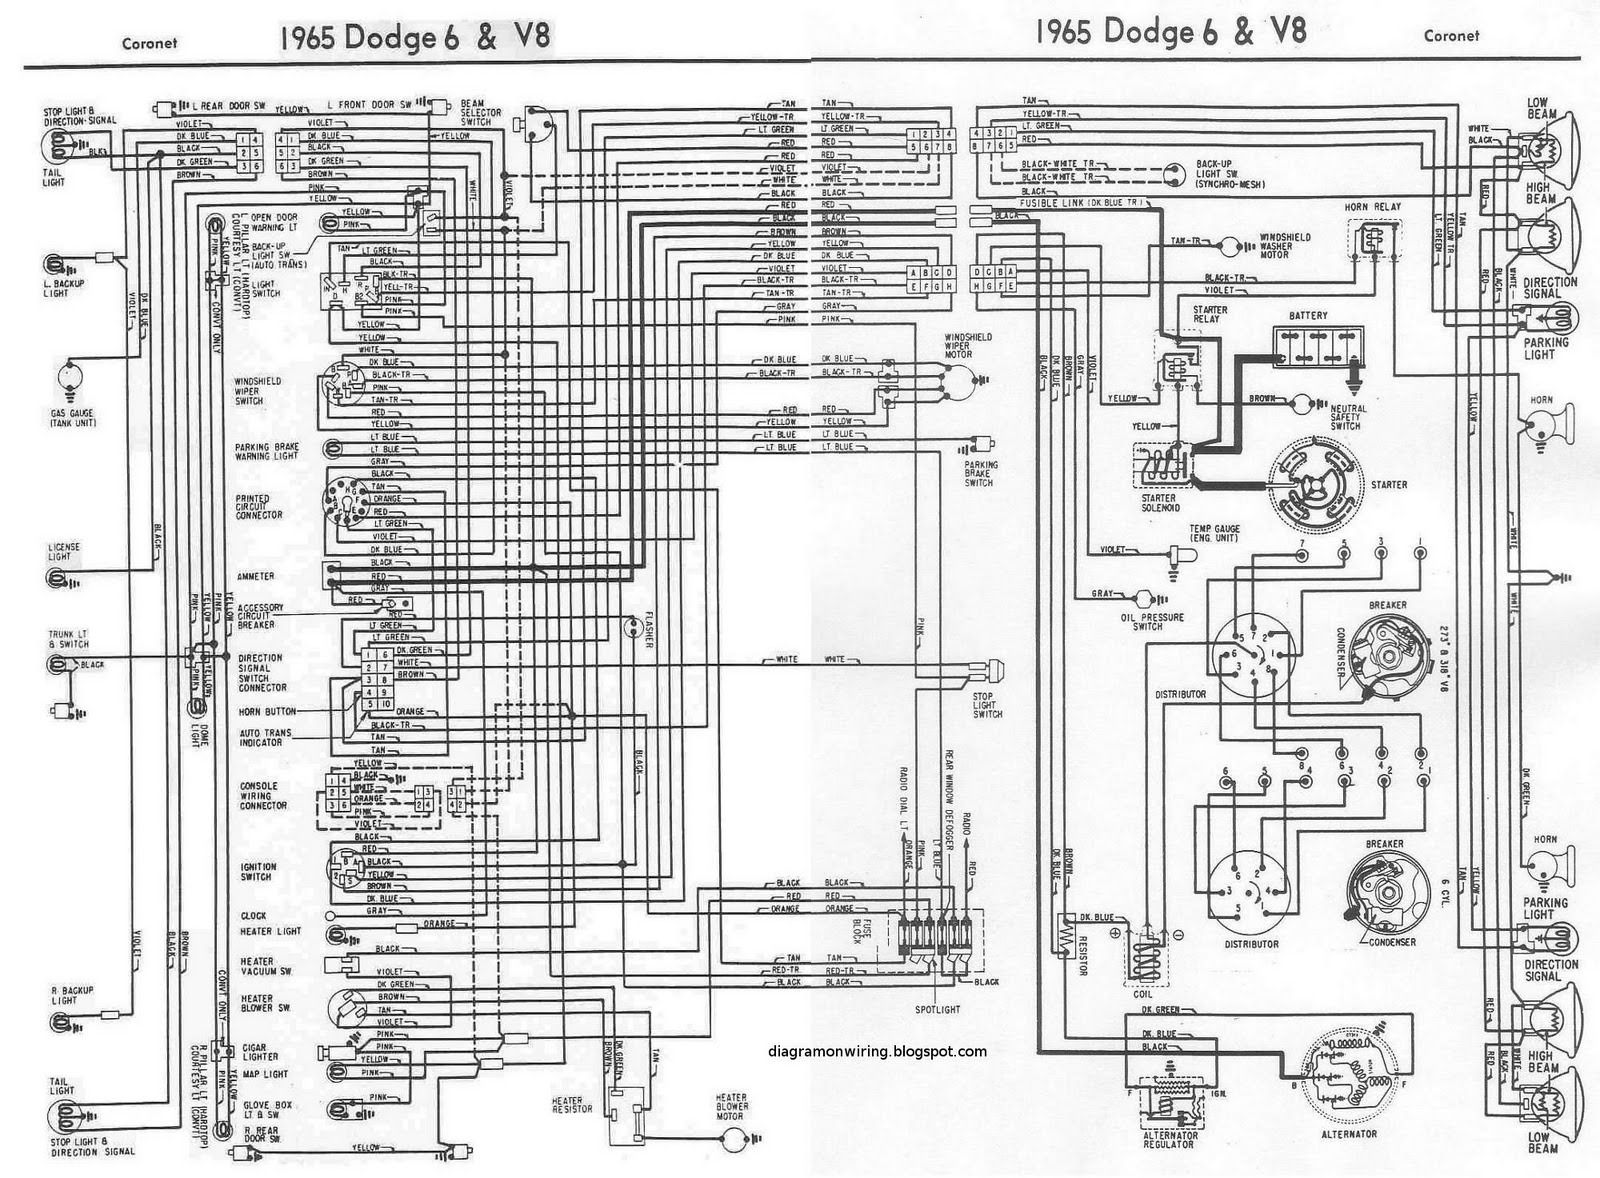 06 Mustang Window Wiring Diagram Library 1957 Chevy Power 1965 Dodge 6 And V8 Coronet Complete Electrical